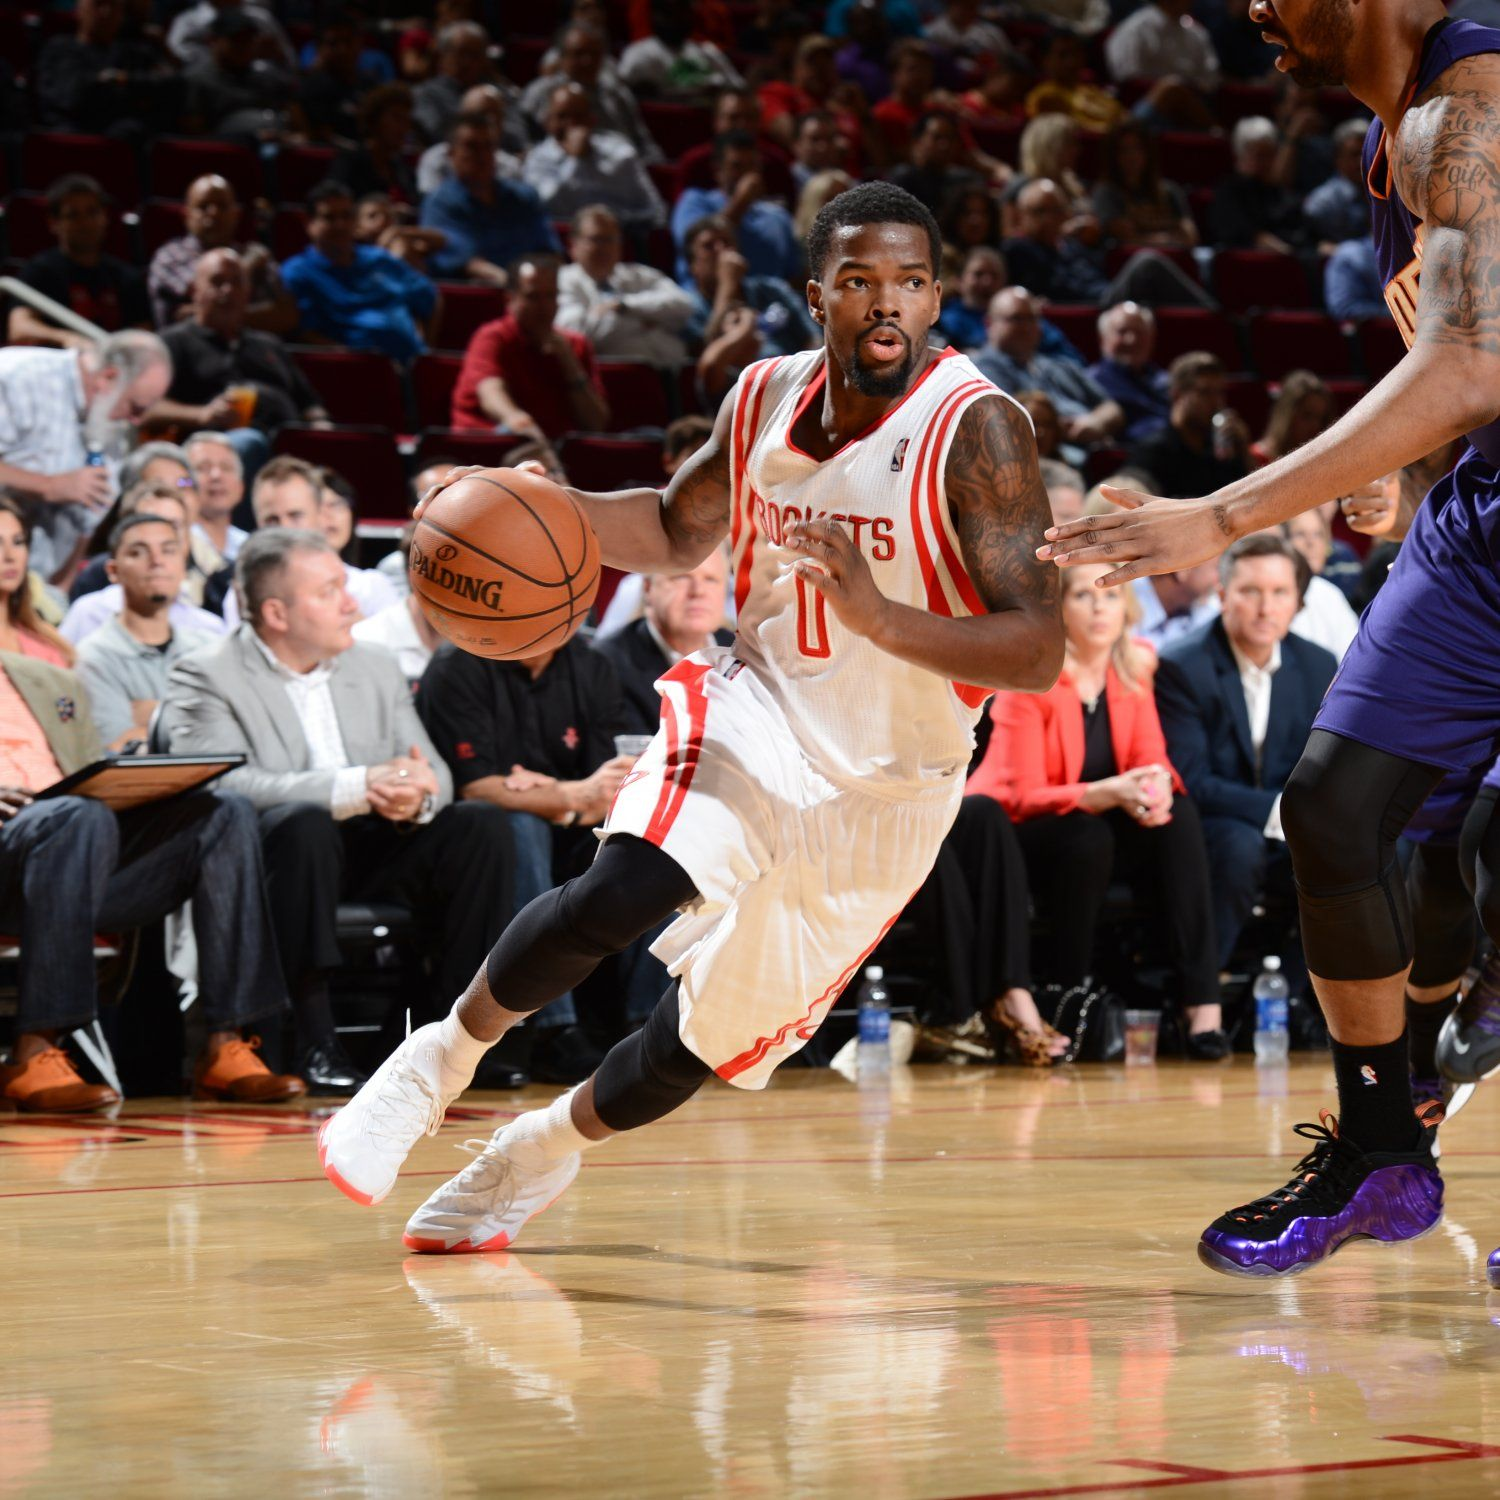 hi-res-453621695-aaron-brooks-of-the-houston-rockets-drives-to-the_crop_exact